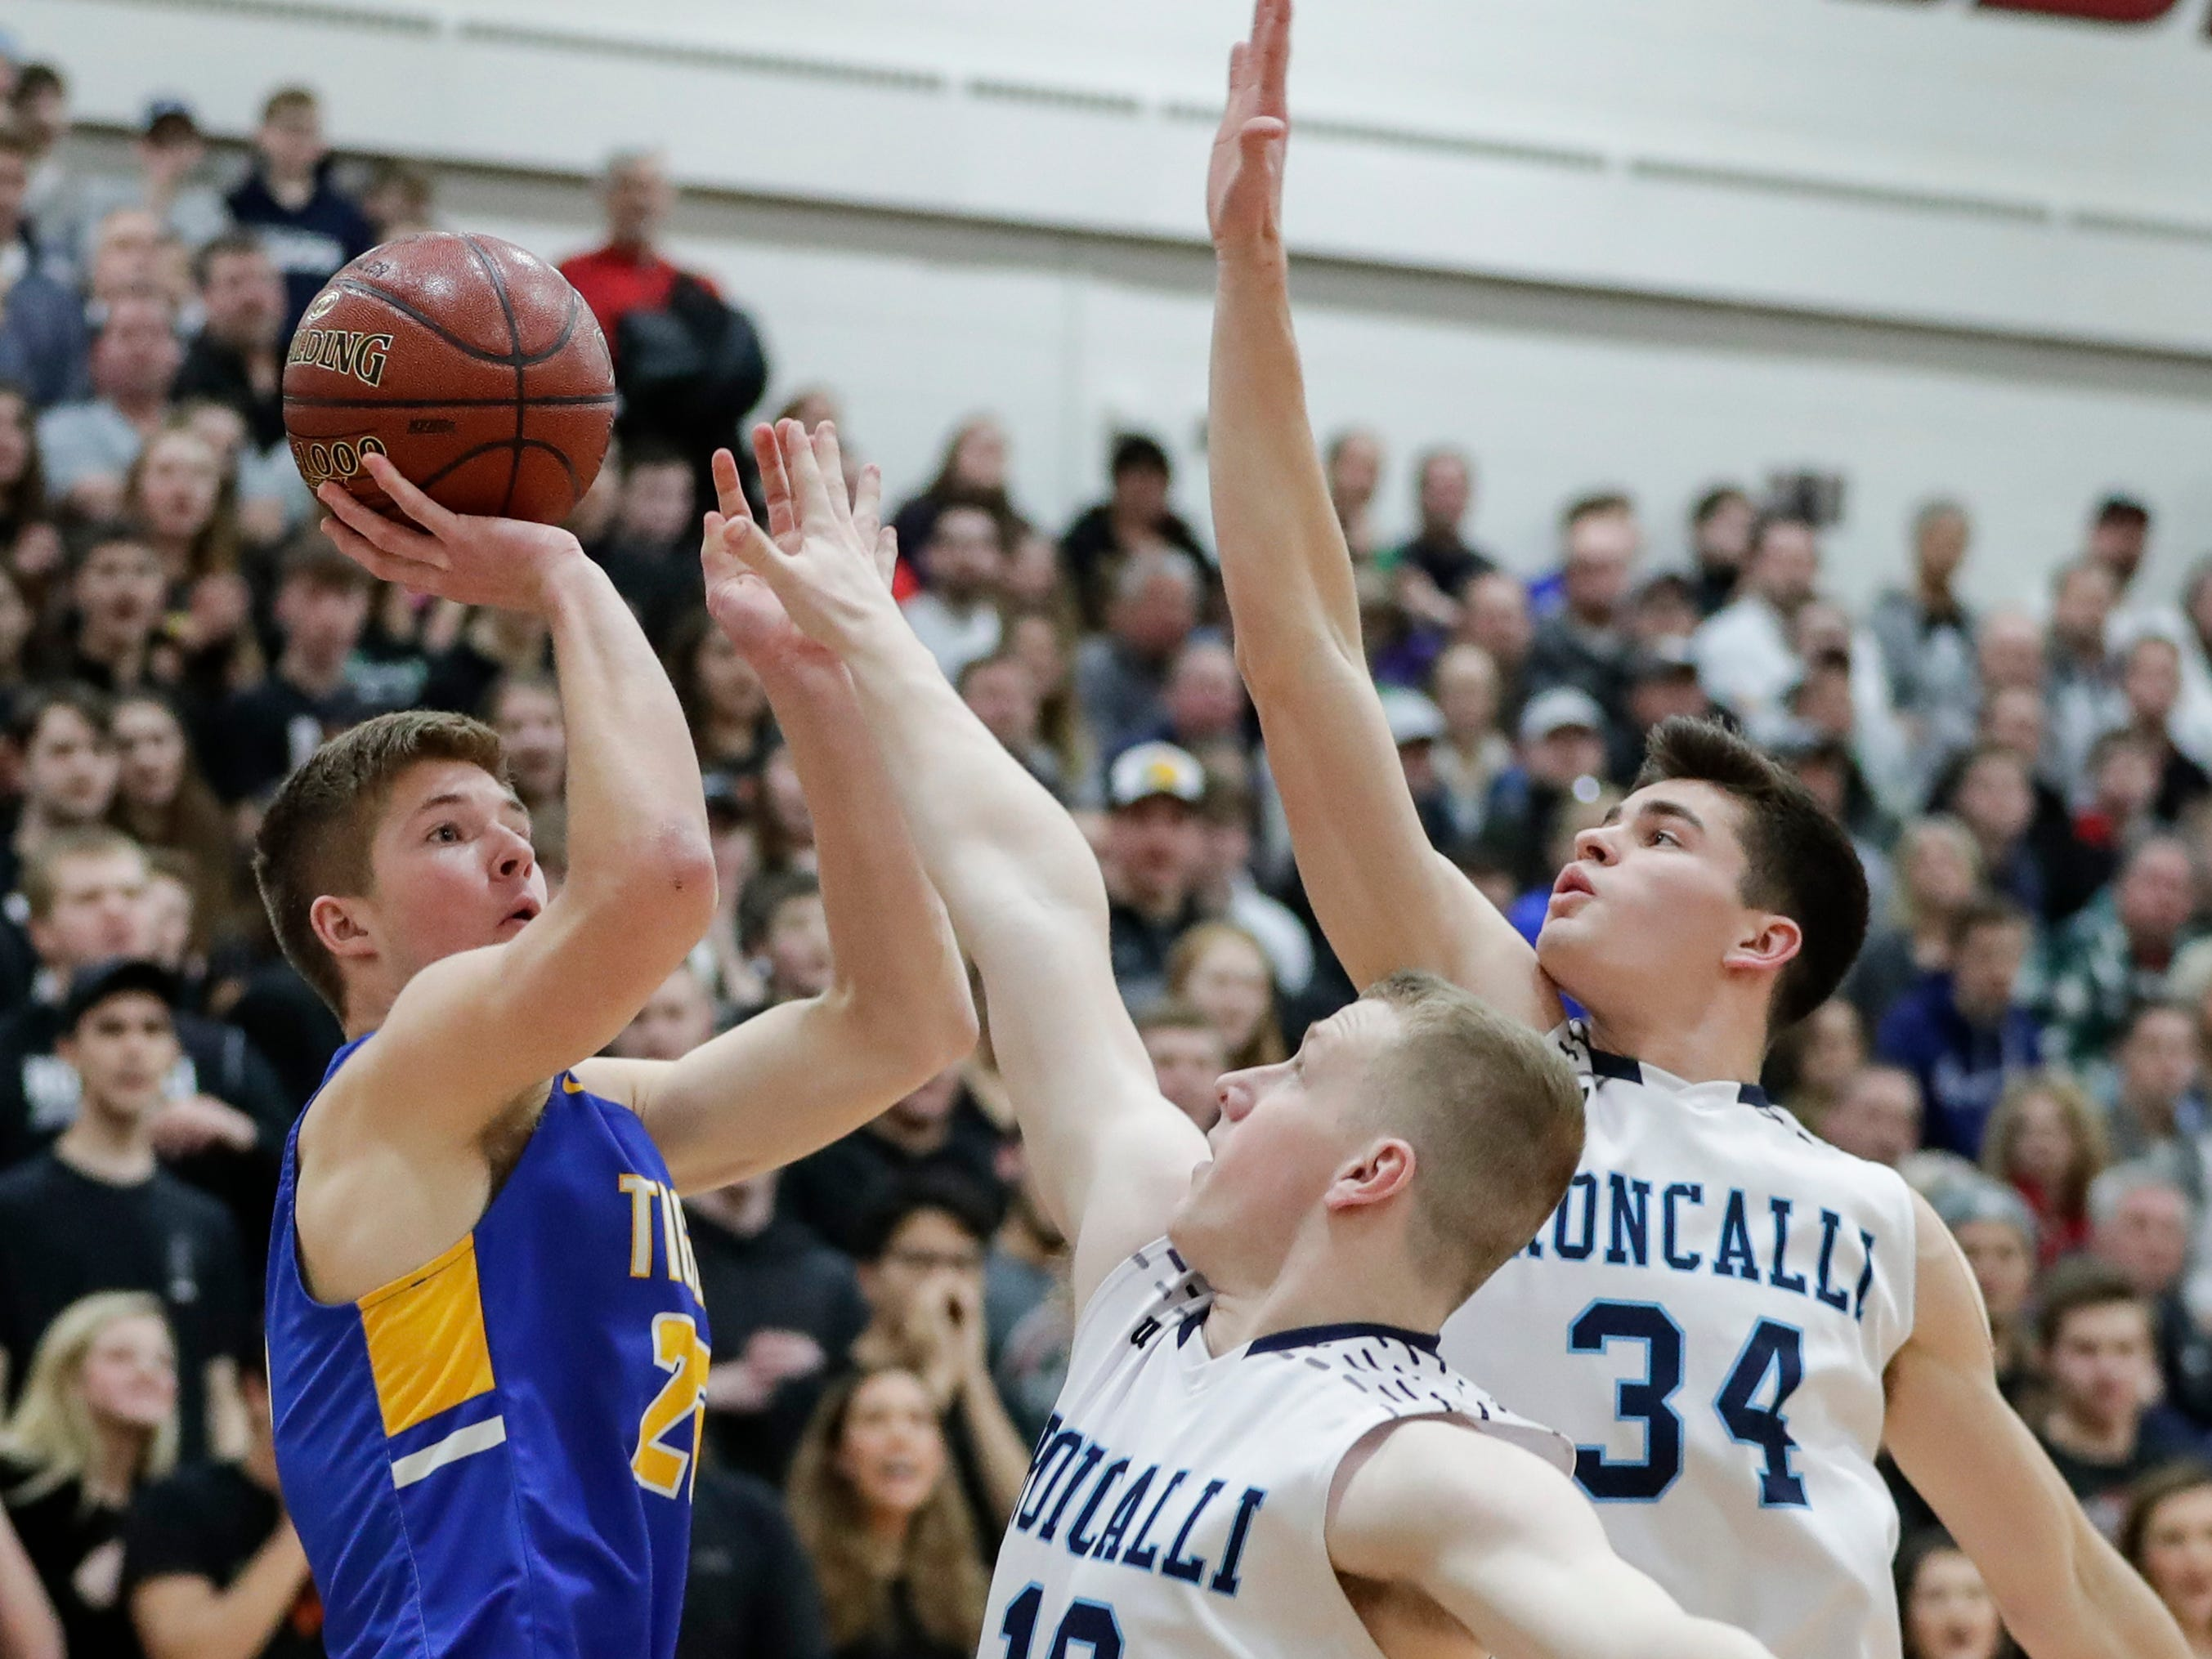 Howards Grove's Jack Baldwin (25) puts up a shot contested by Roncalli's Matt Le Vene (10) and Ian Behringer (34) in a WIAA Division 4 sectional semifinal at New Holstein High School Thursday, March 7, 2019, in New Holstein, Wis.